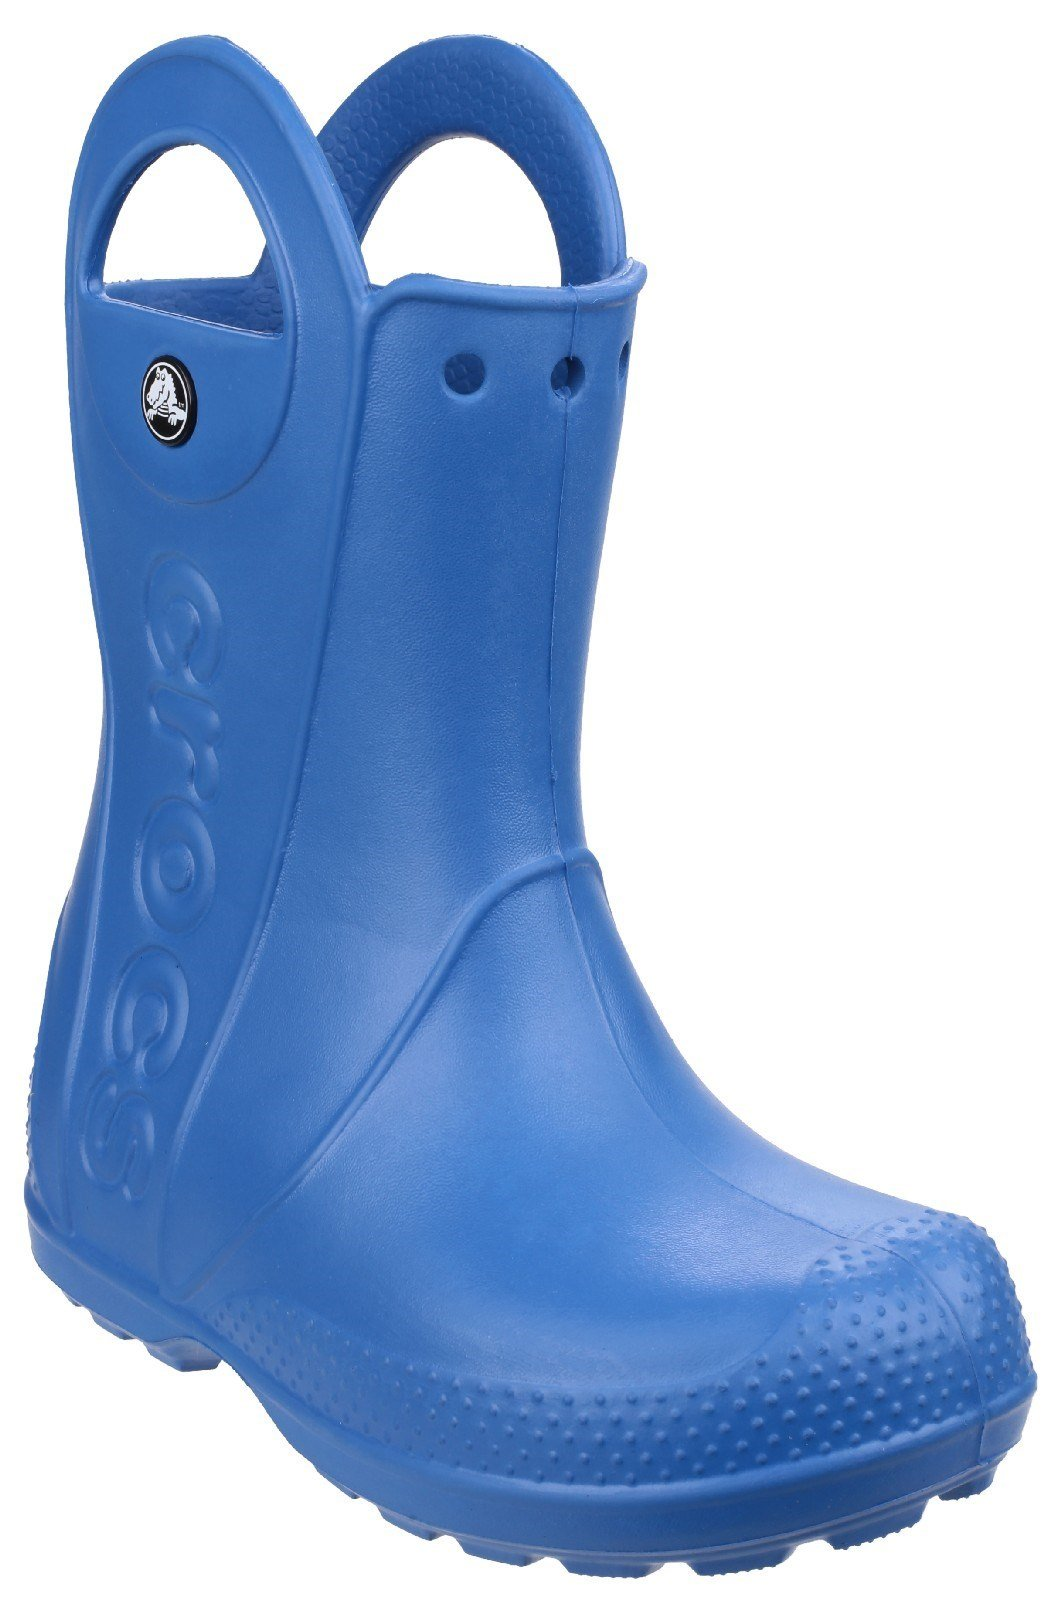 Crocs Kids Unisex Handle It Rain Boot Kids Shoes, Size: 6 M US Toddler, Color Sea Blue by Crocs